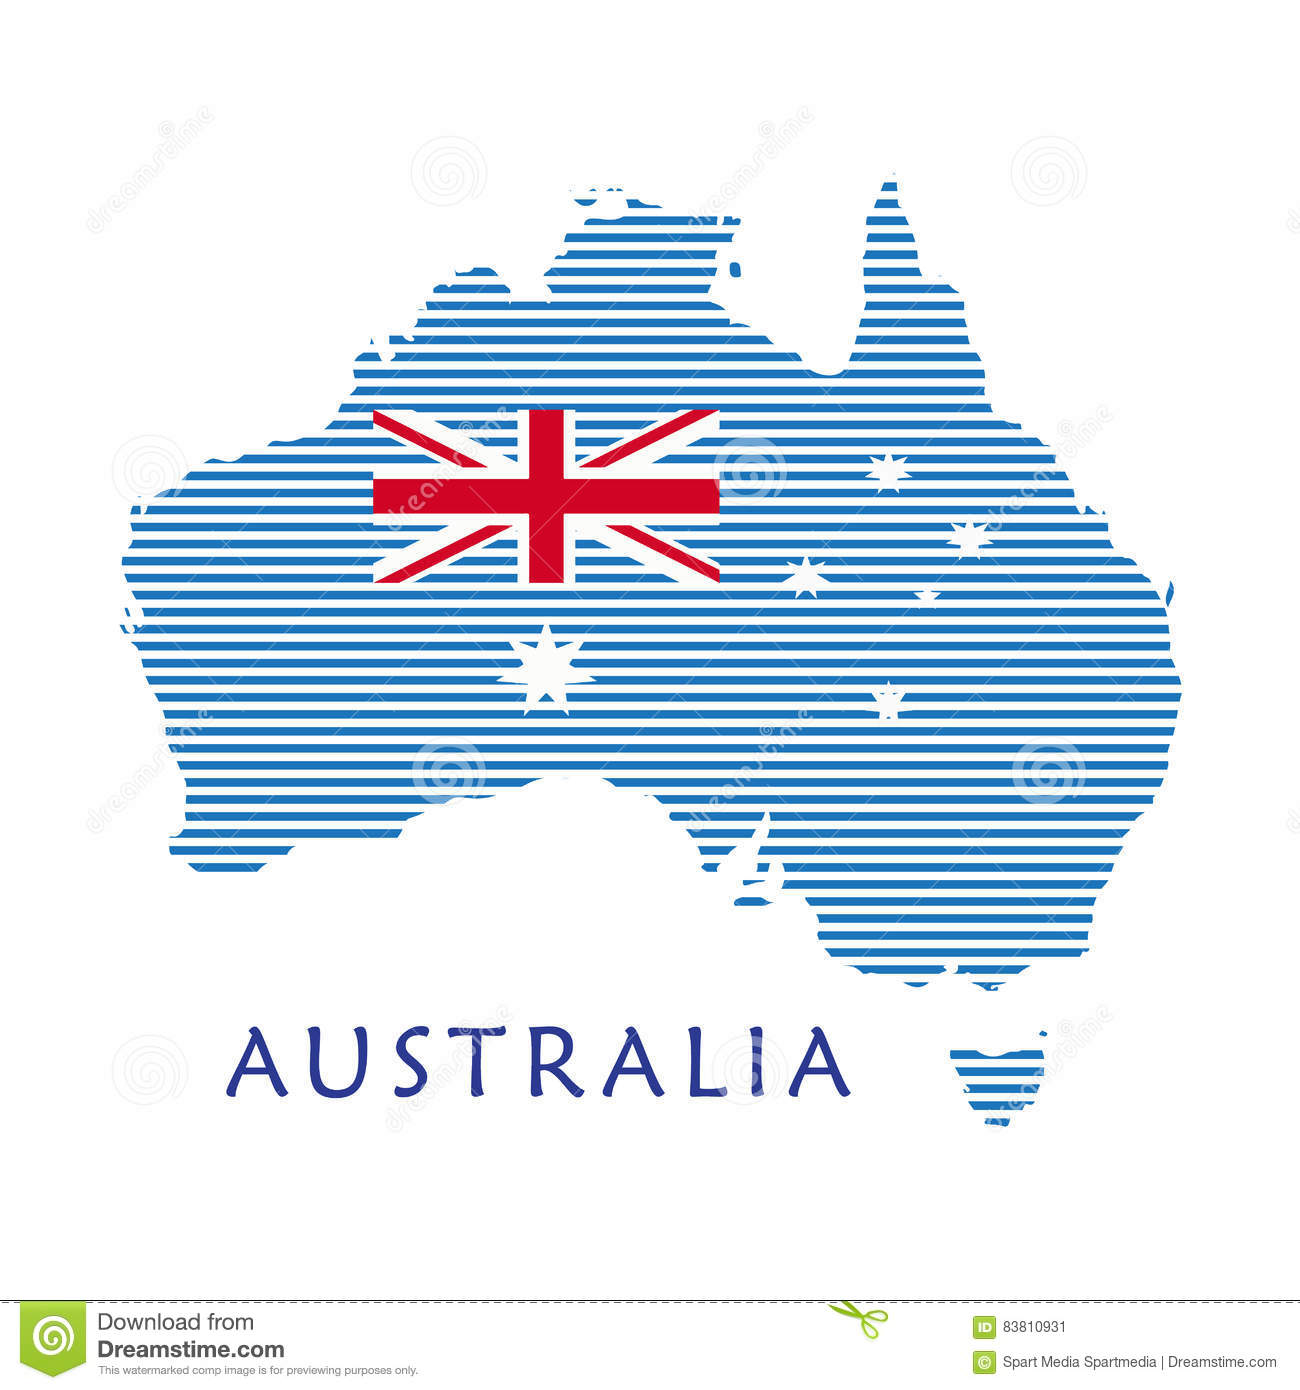 Australia Map Wallpaper.Australia Map Stock Vector Illustration Of Australian 83810931